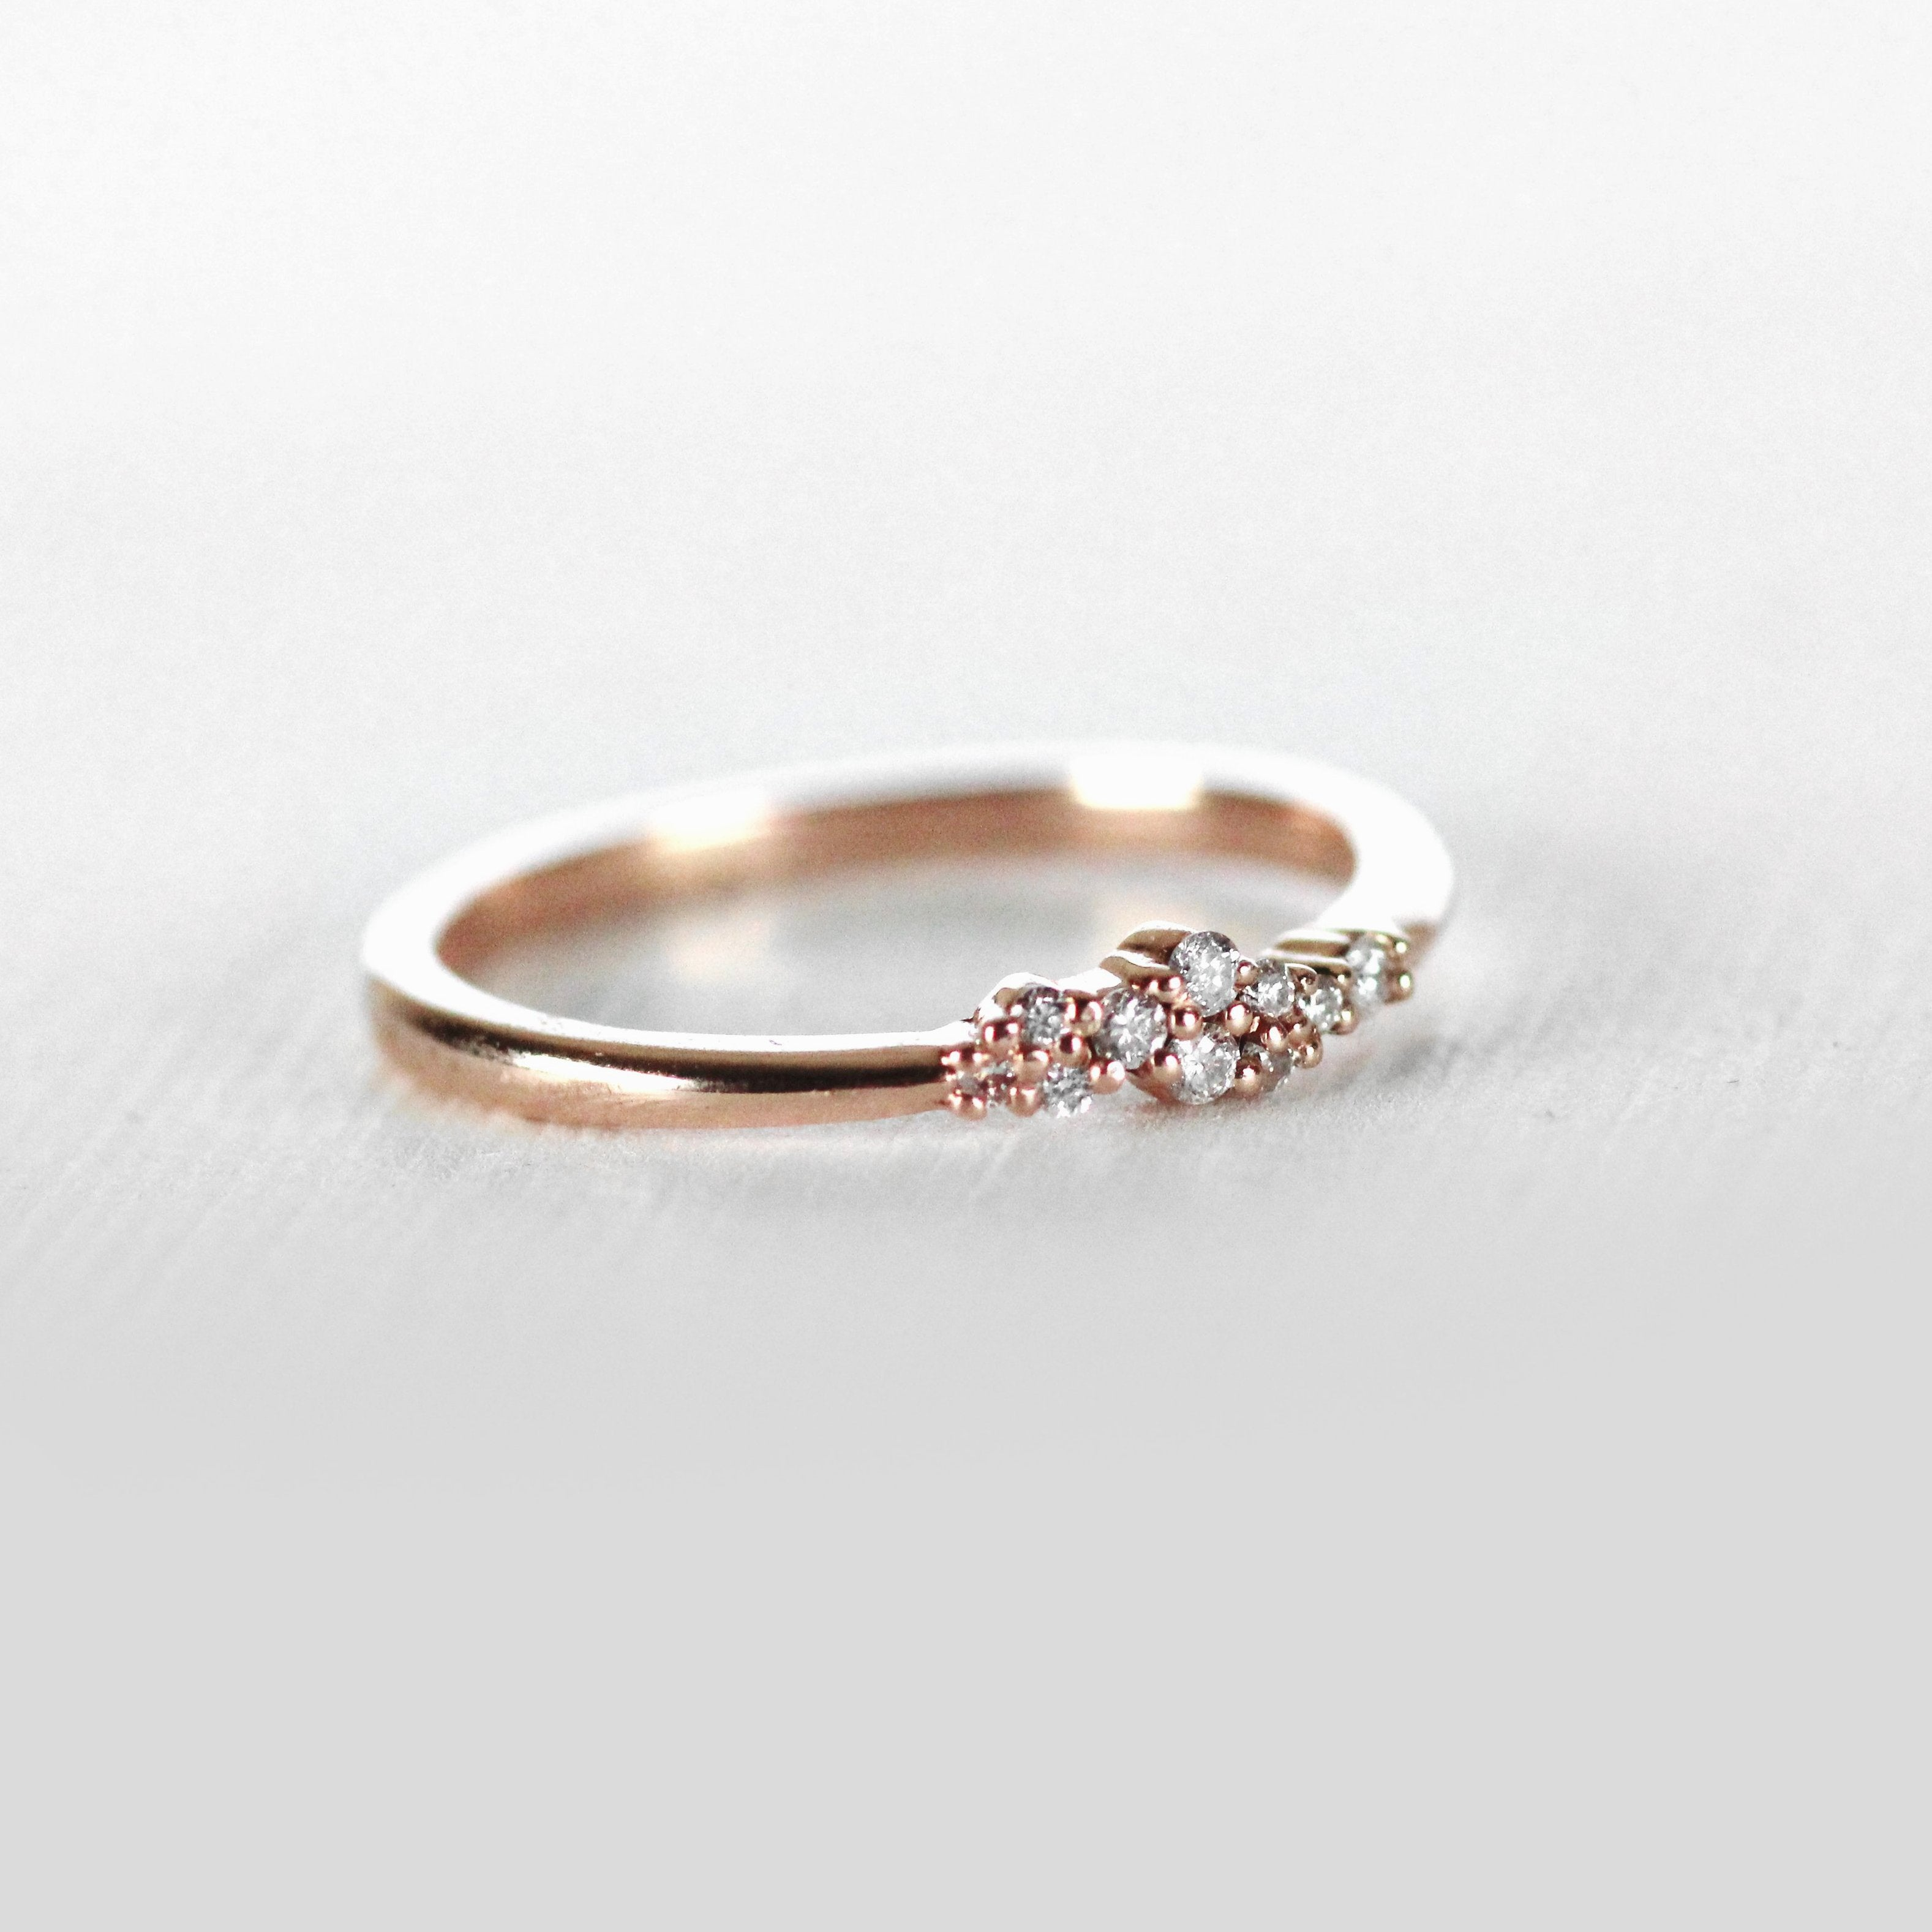 Fiona Cluster Style Ring - Diamond Stackable Band in 10k Rose or Yellow - Ready to Size and Ship - Salt & Pepper Celestial Diamond Engagement Rings and Wedding Bands  by Midwinter Co.